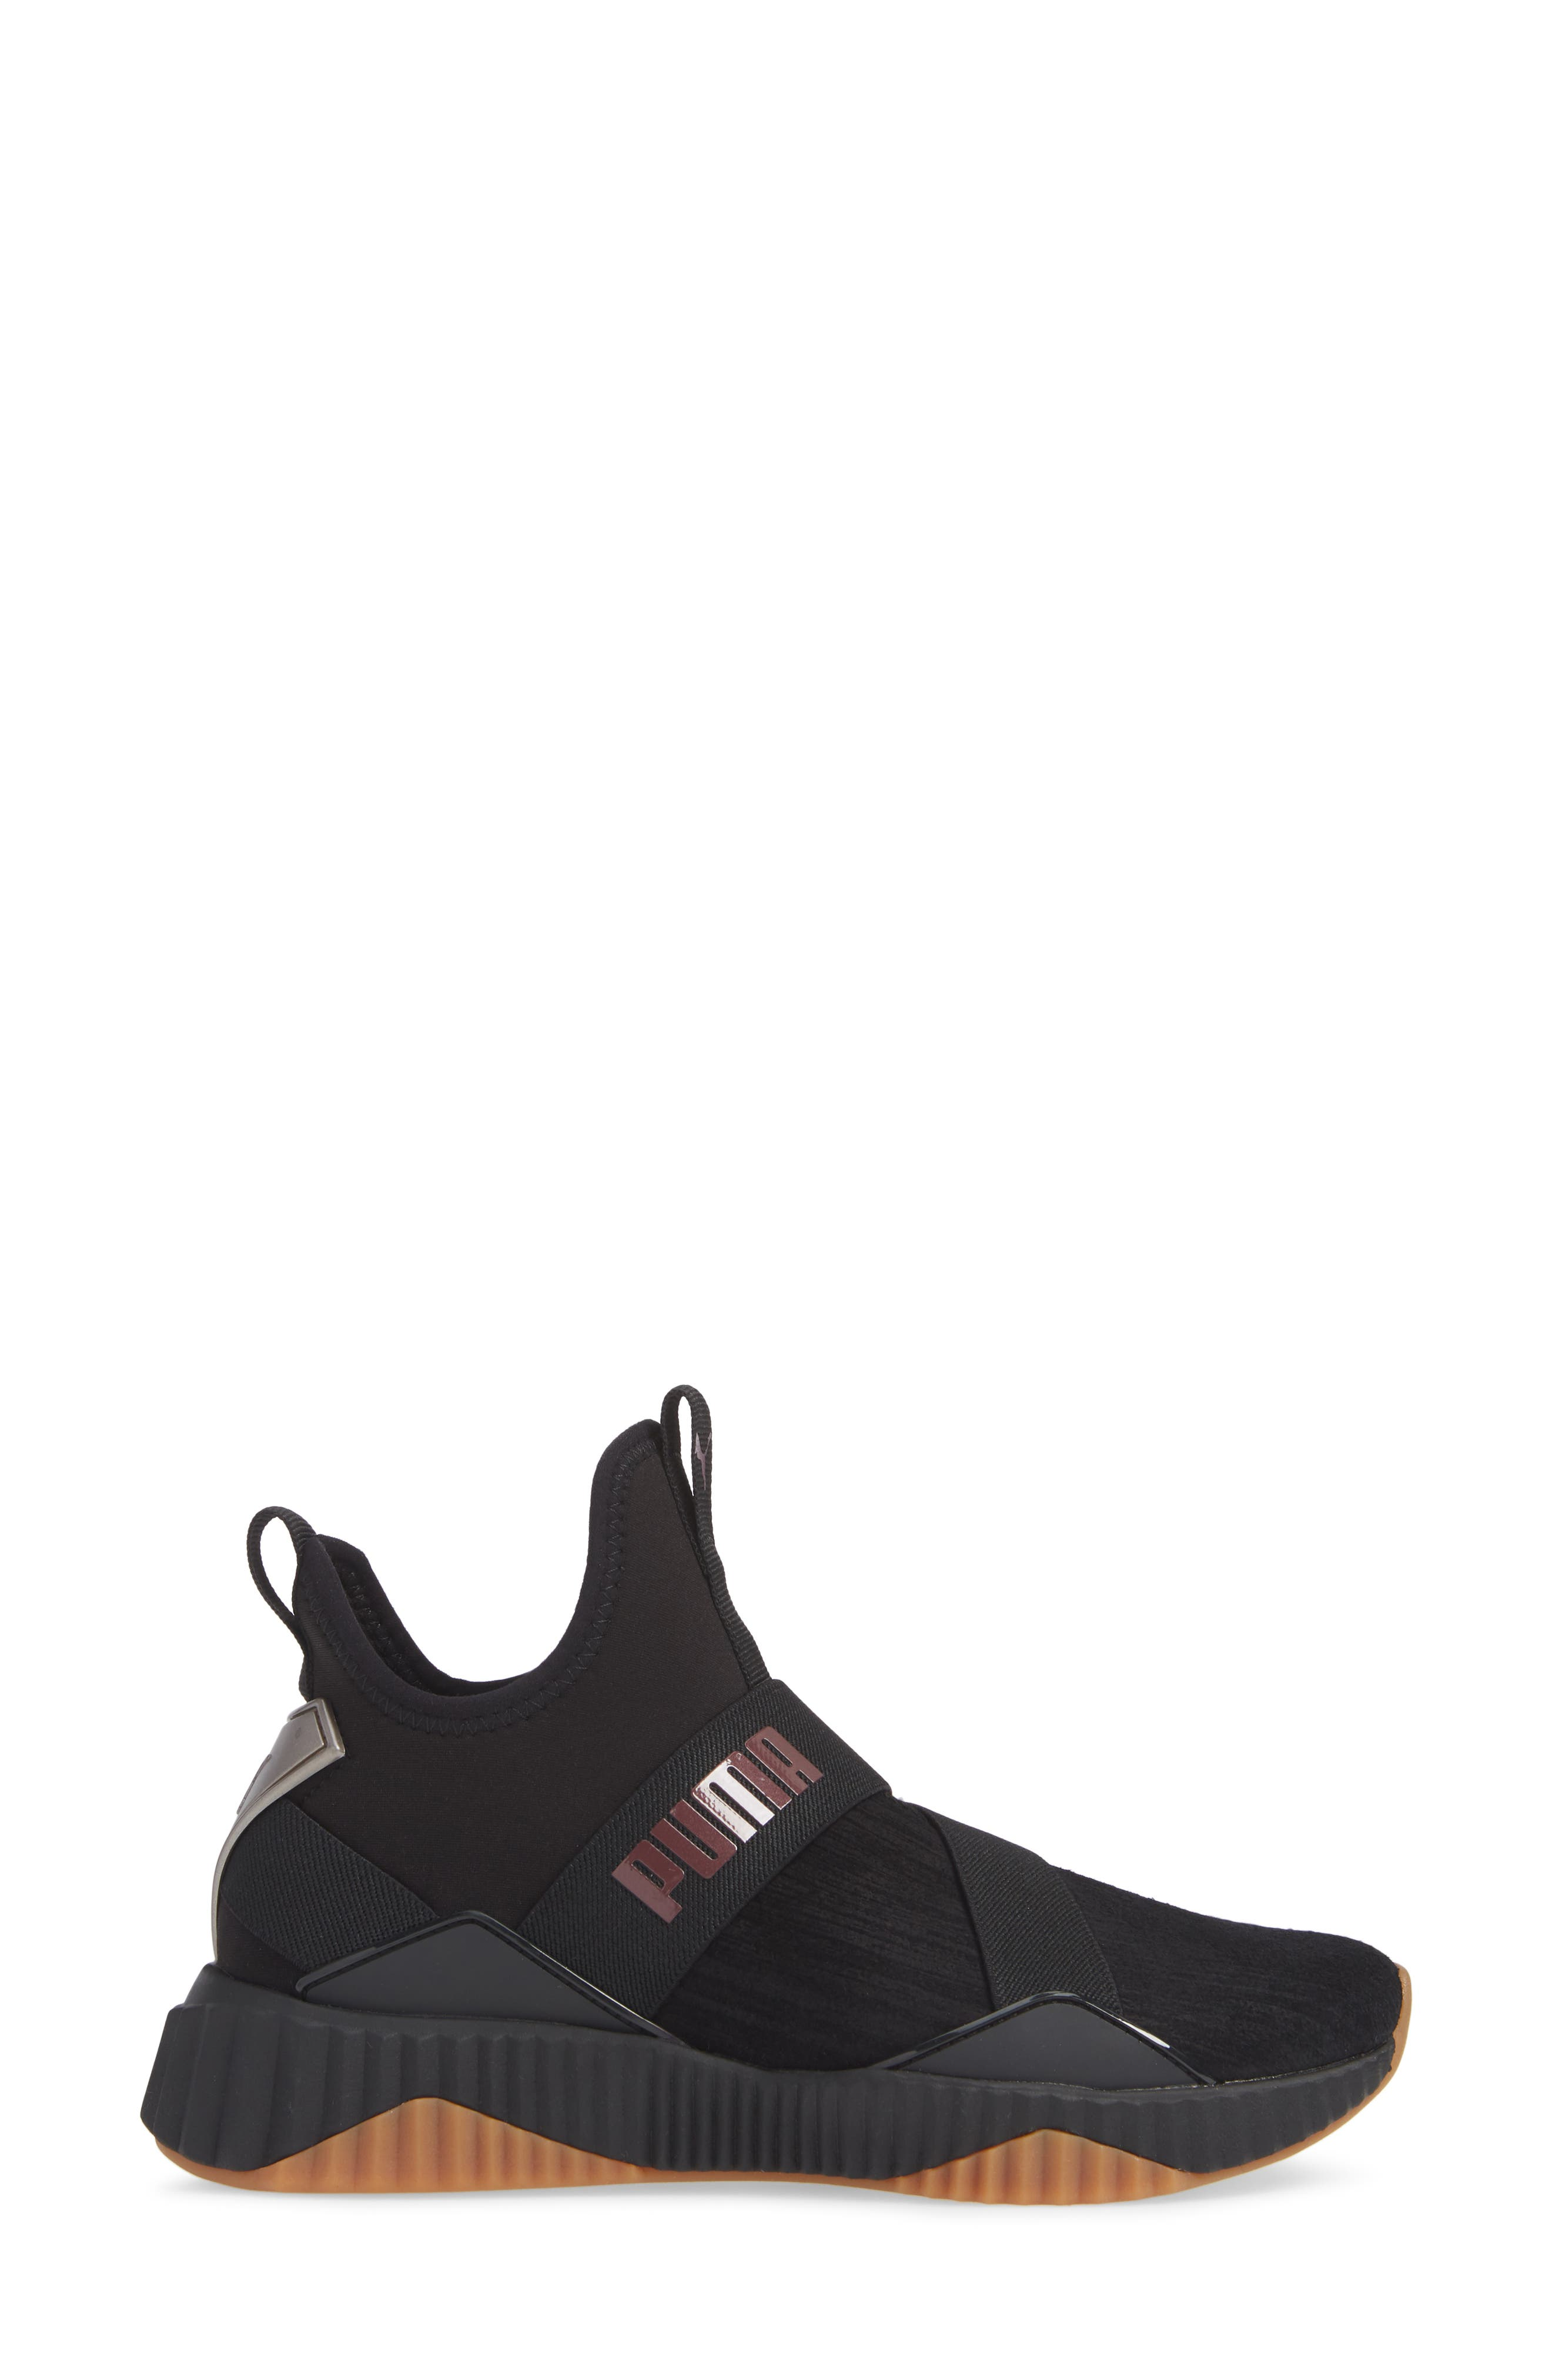 Defy Mid Luxe Sneaker,                             Alternate thumbnail 3, color,                             PUMA BLACK/ FIG